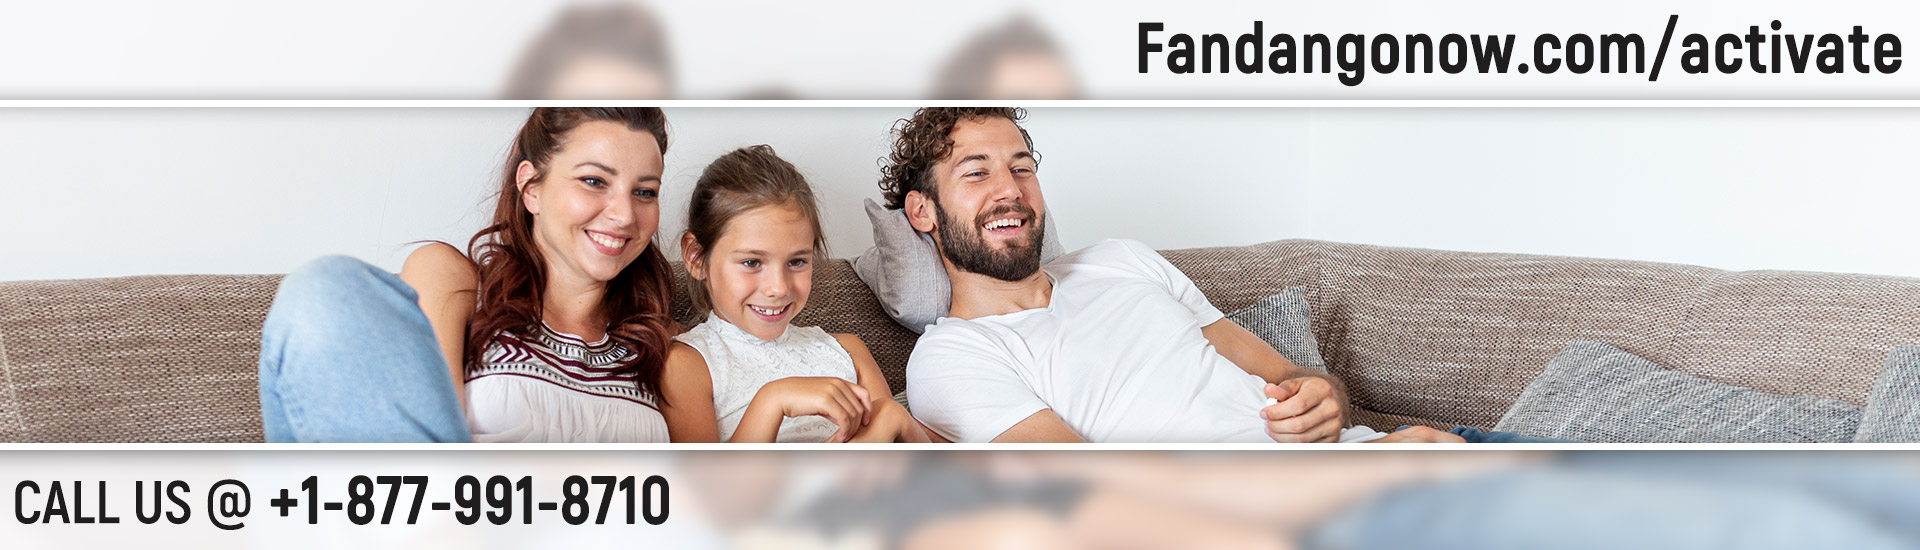 Activate Fandango Now channel on your gadget